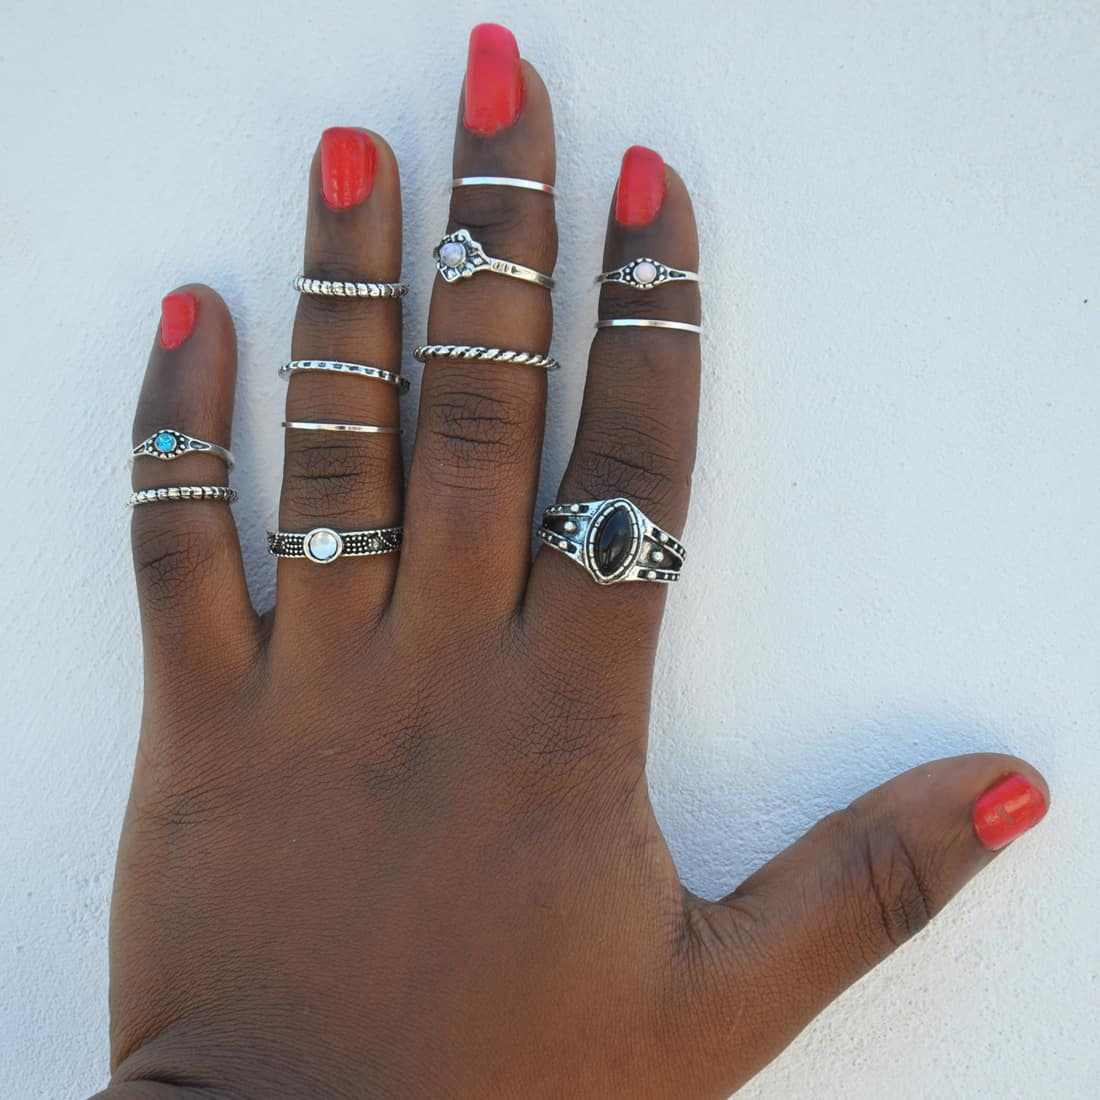 M0332 silver8 Jewelry Sets Rings maureens.com boutique